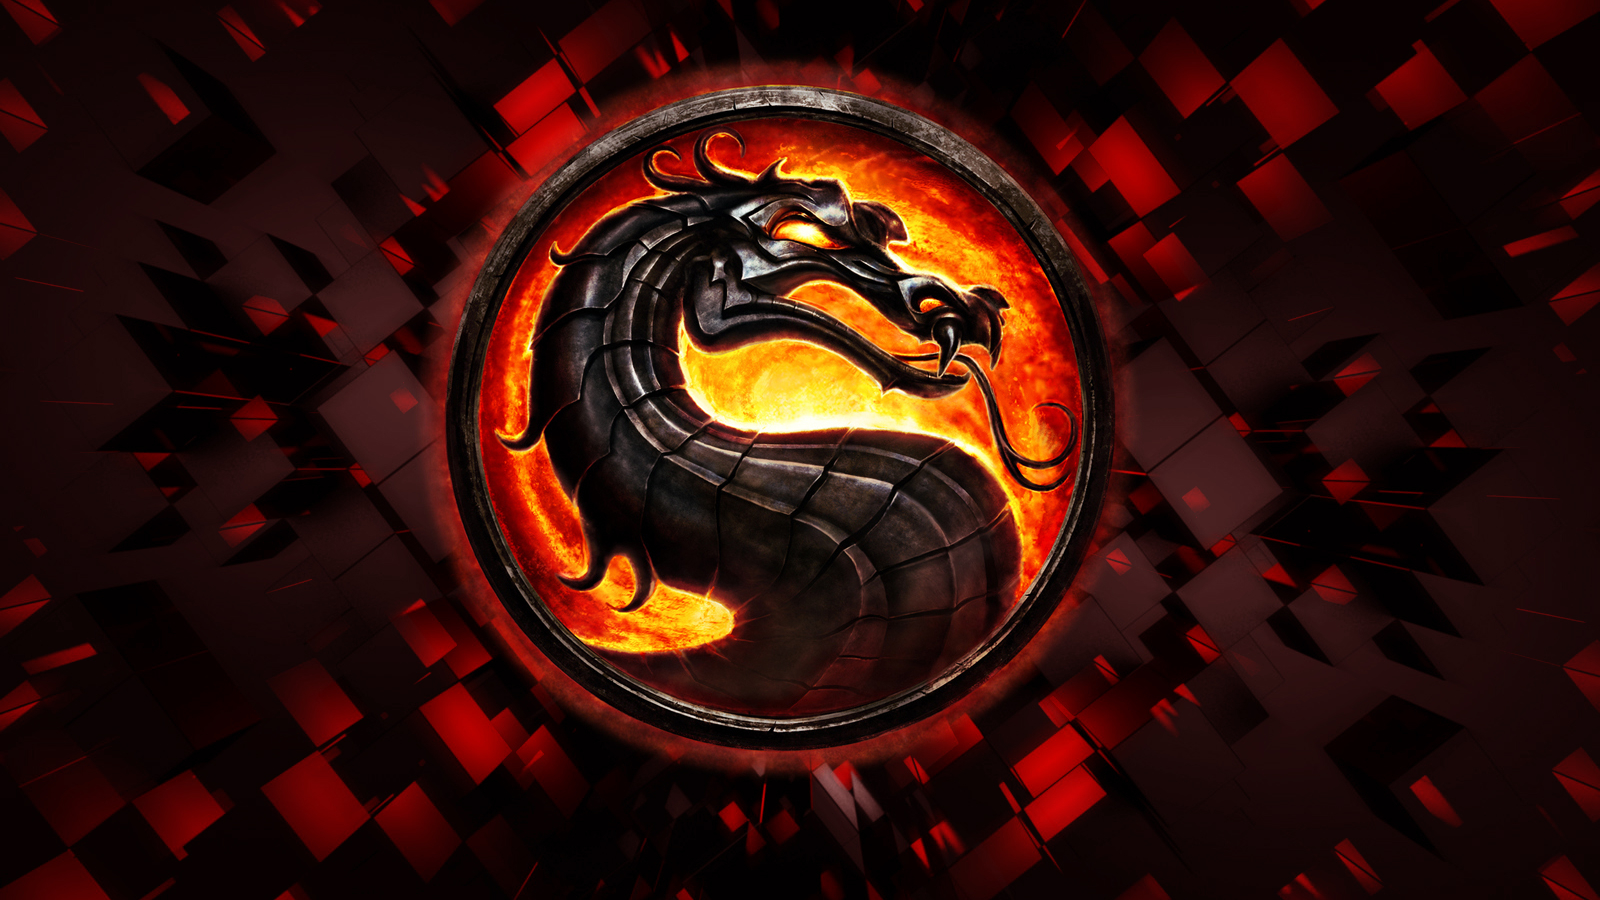 mortal kombat logo Company HD Wallpaper